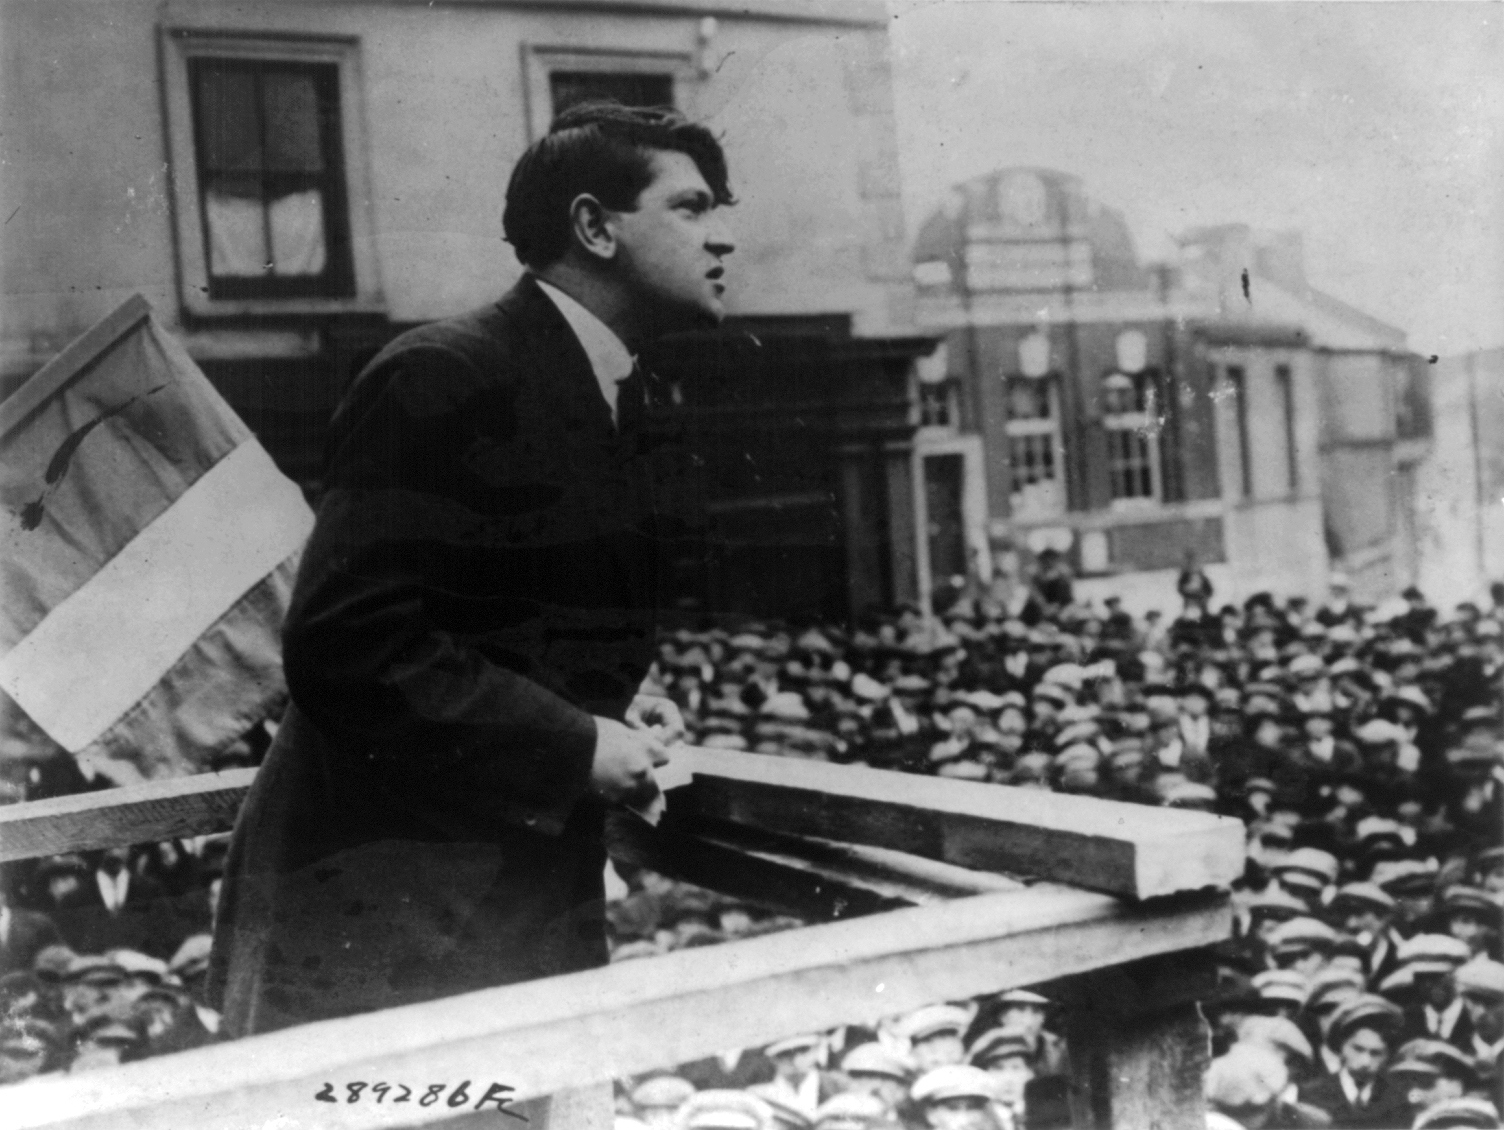 http://upload.wikimedia.org/wikipedia/commons/b/b1/Michael_Collins_addressing_crowd_in_Cork_cph.3b15295.jpg